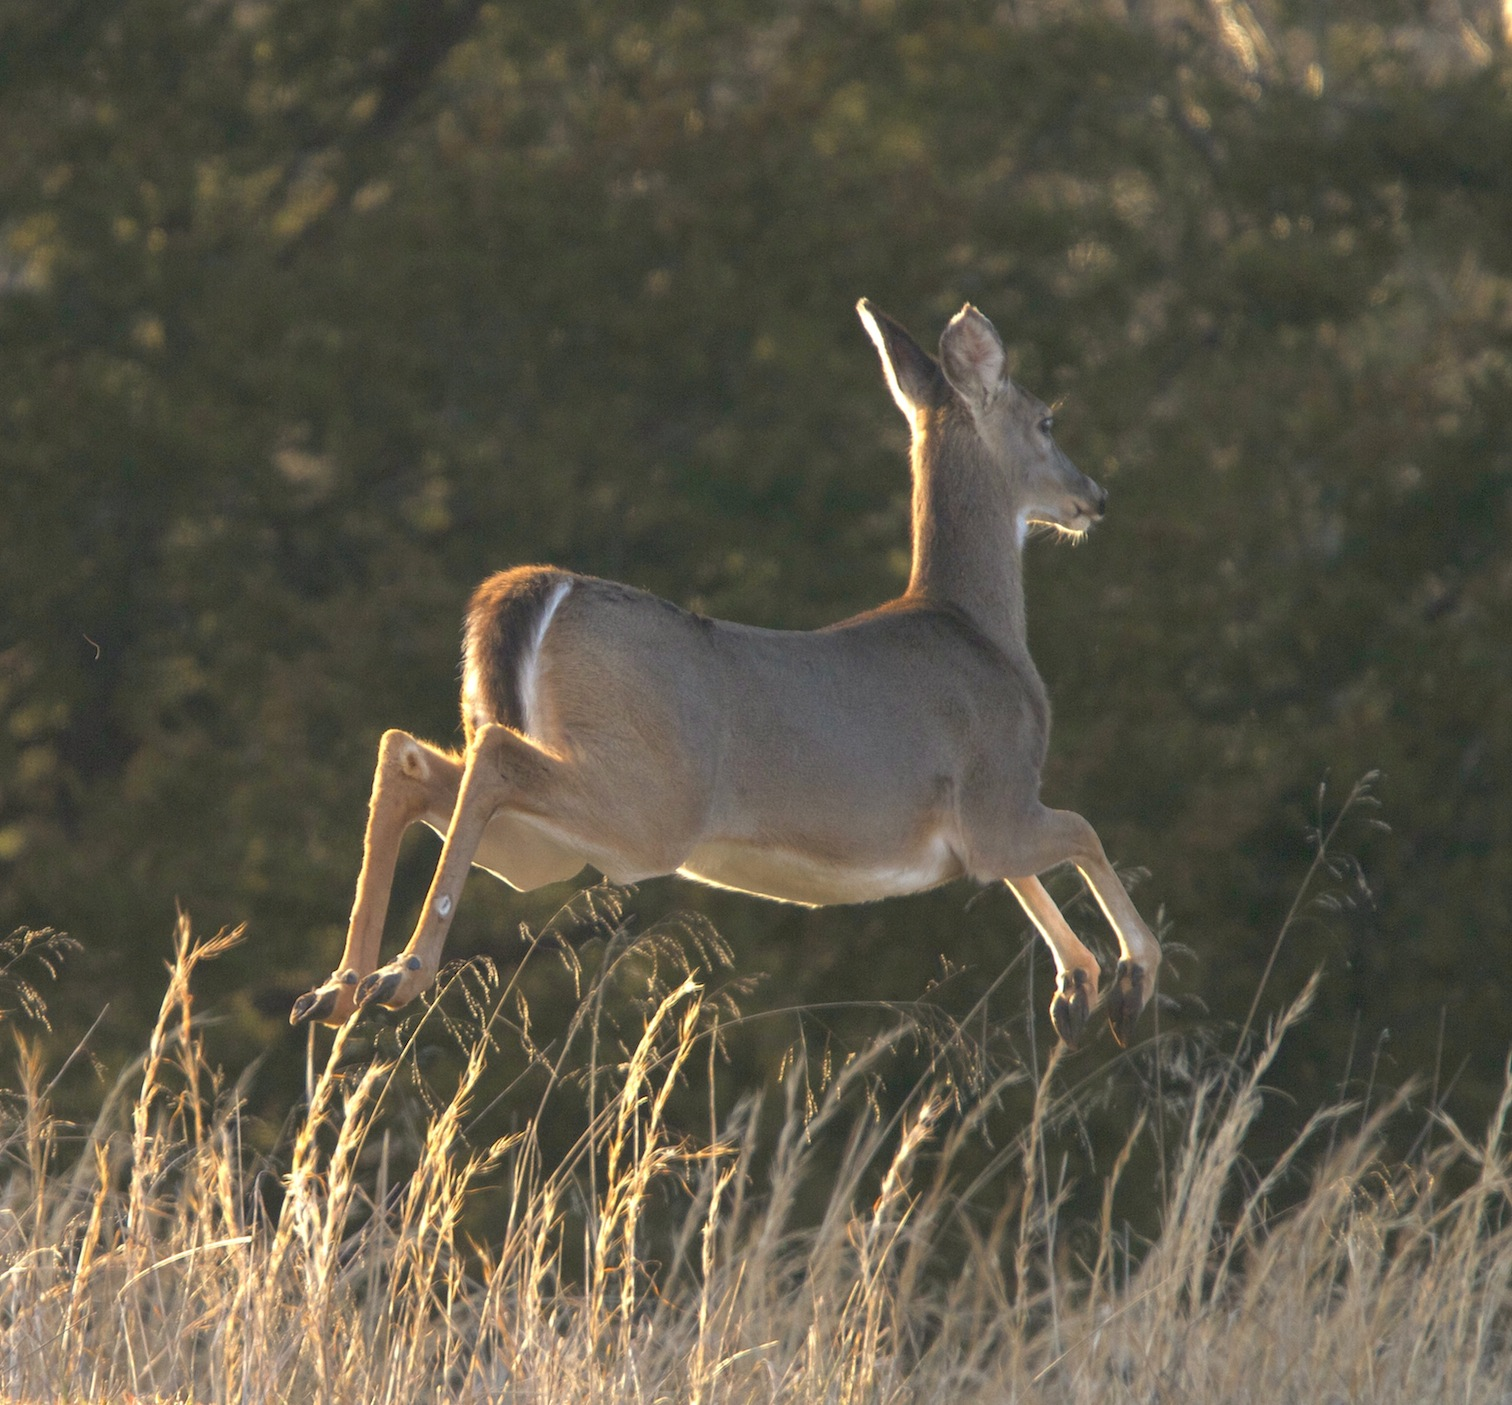 whitetail deer leaping last evening